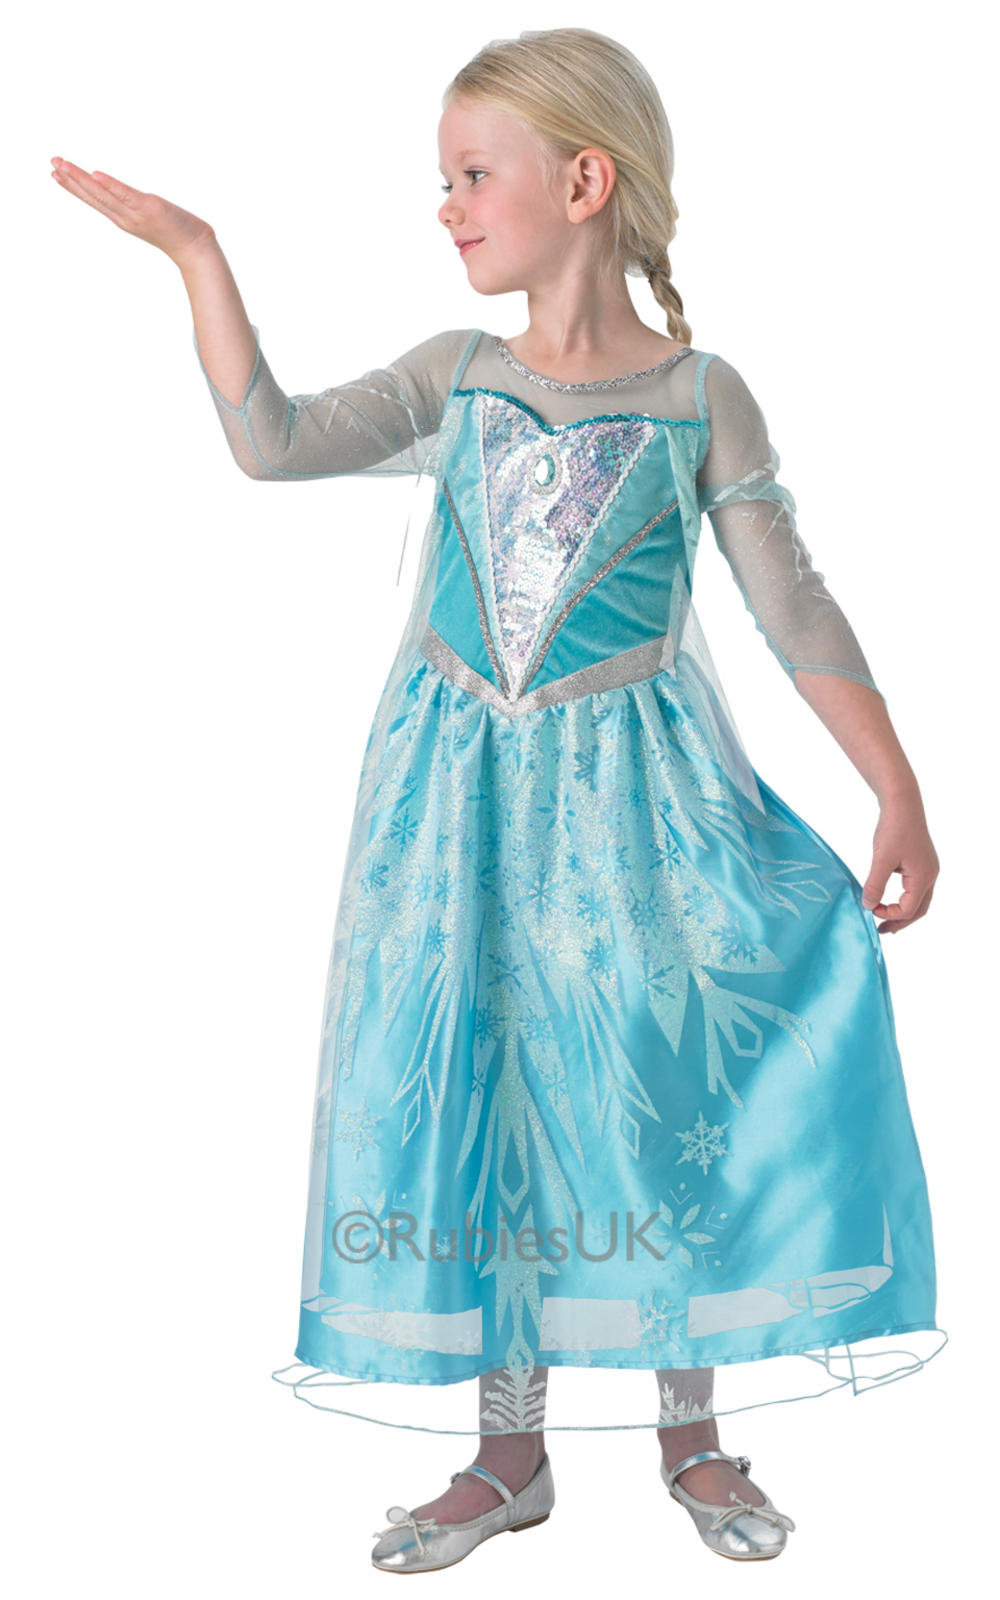 The Premier Party Shop is around to offer an extensive range of fancy dress, party costumes and accessories for every occasion. We have a physical shop based in Dorset but are able to fulfil orders throughout the UK via this website.